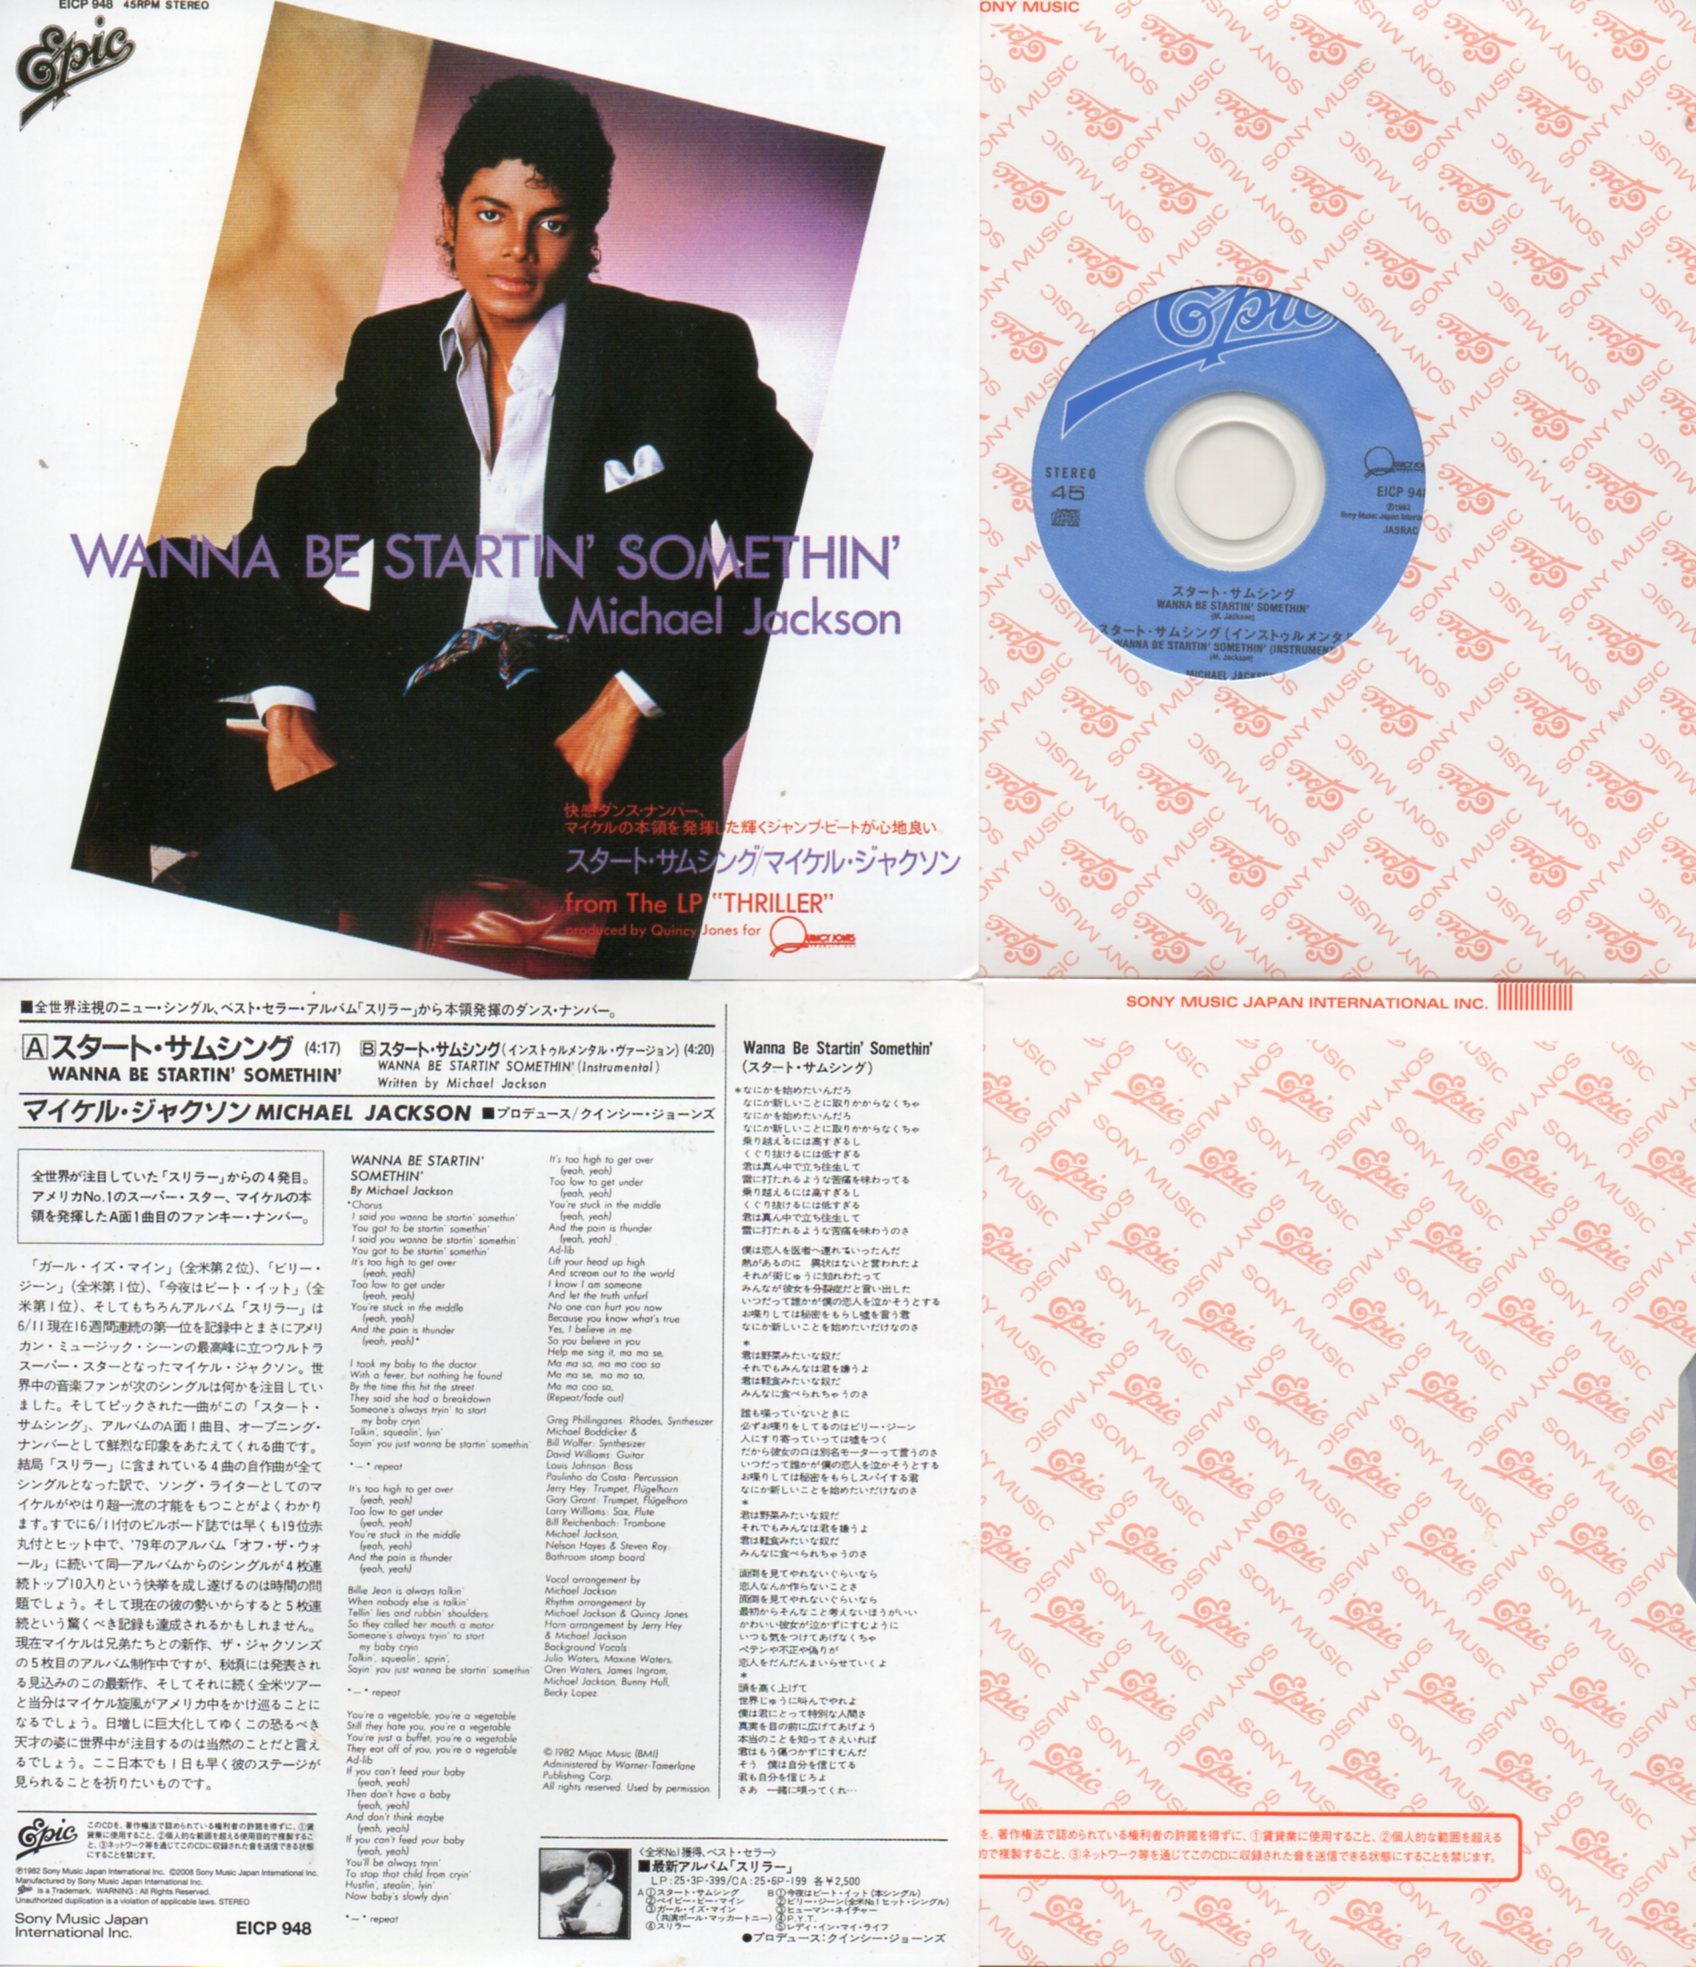 MICHAEL JACKSON - Wanna Be Startin' Somethin' | Japanese single REPLICA | 2-track - CD single